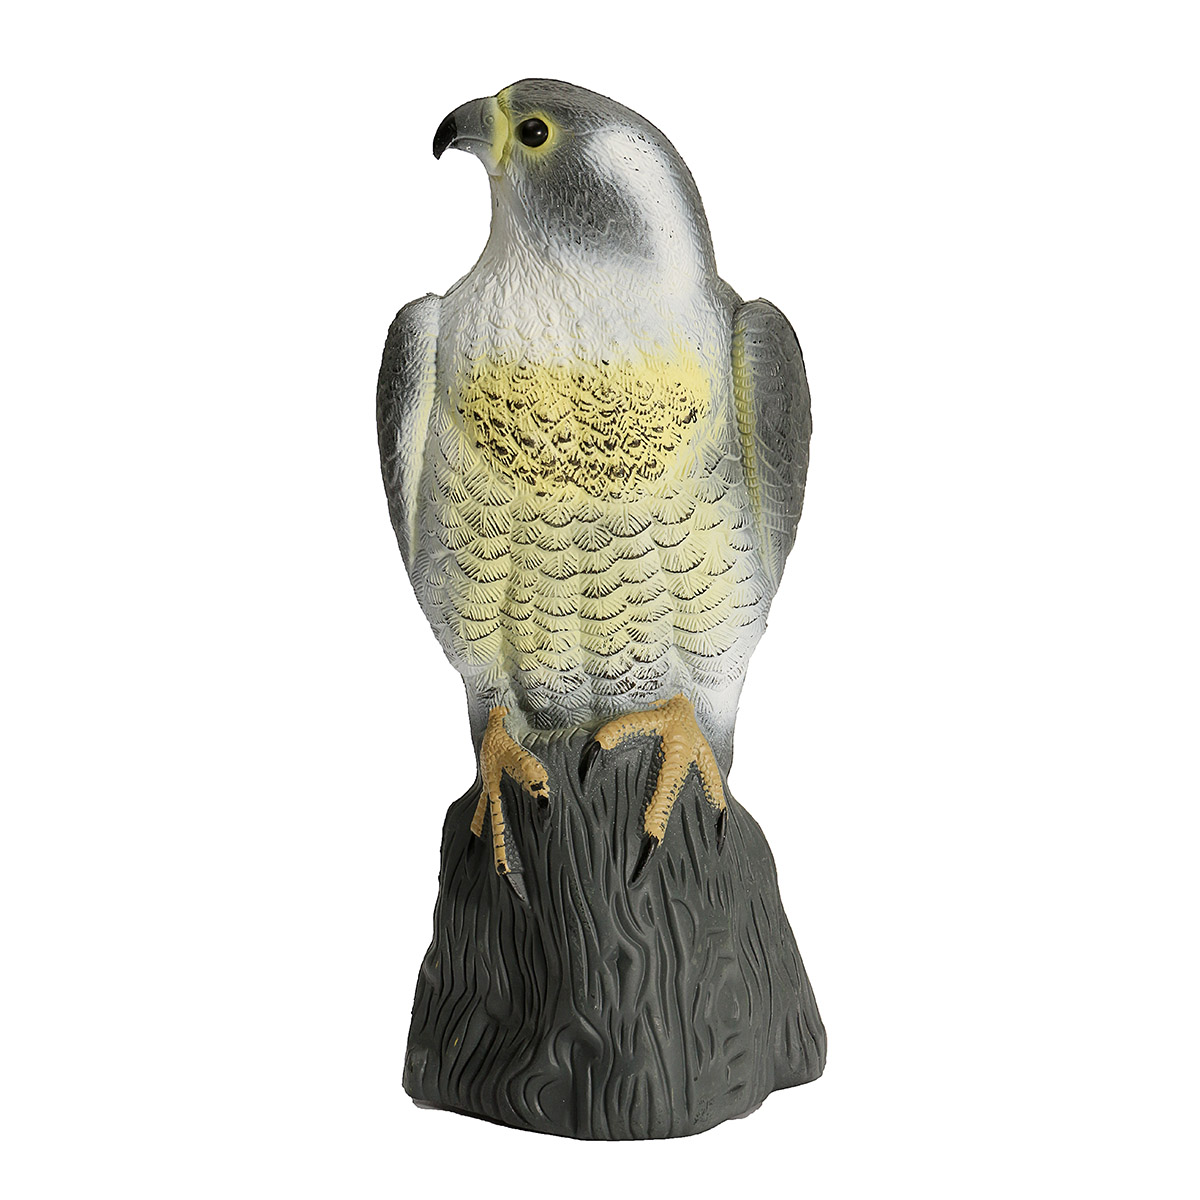 Fake Falcon Hawk Decoy Bird Pigeon Deterrent Scarer Repeller Garden Lawn Decor Hallowmas Decoration